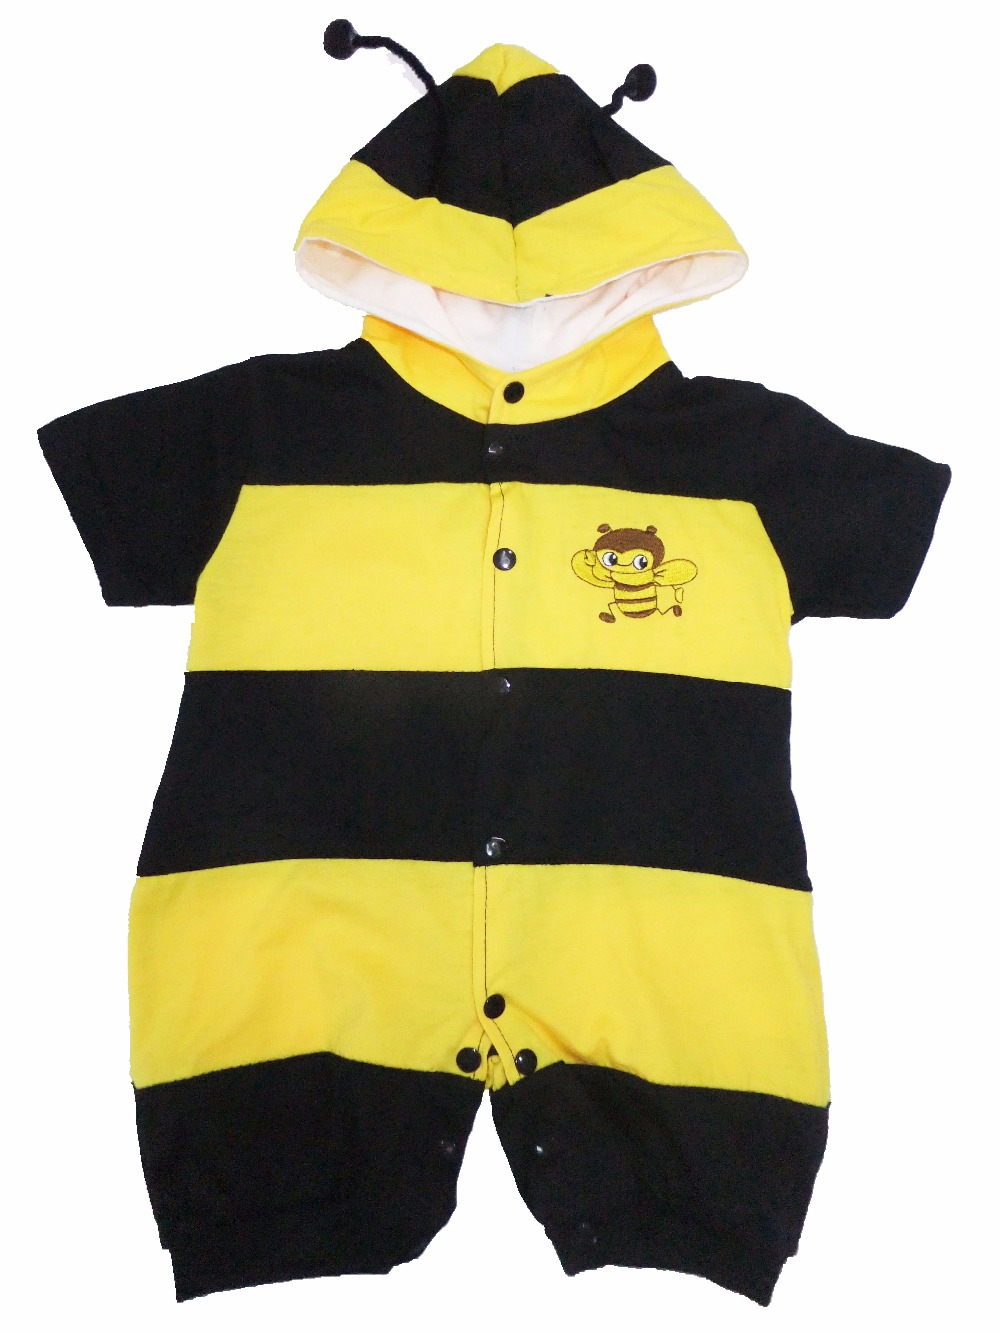 wholesale-retail newest cotton clothing Baby crawl clothing super,kid climb clothing Role-playing bees SZ-S-XL